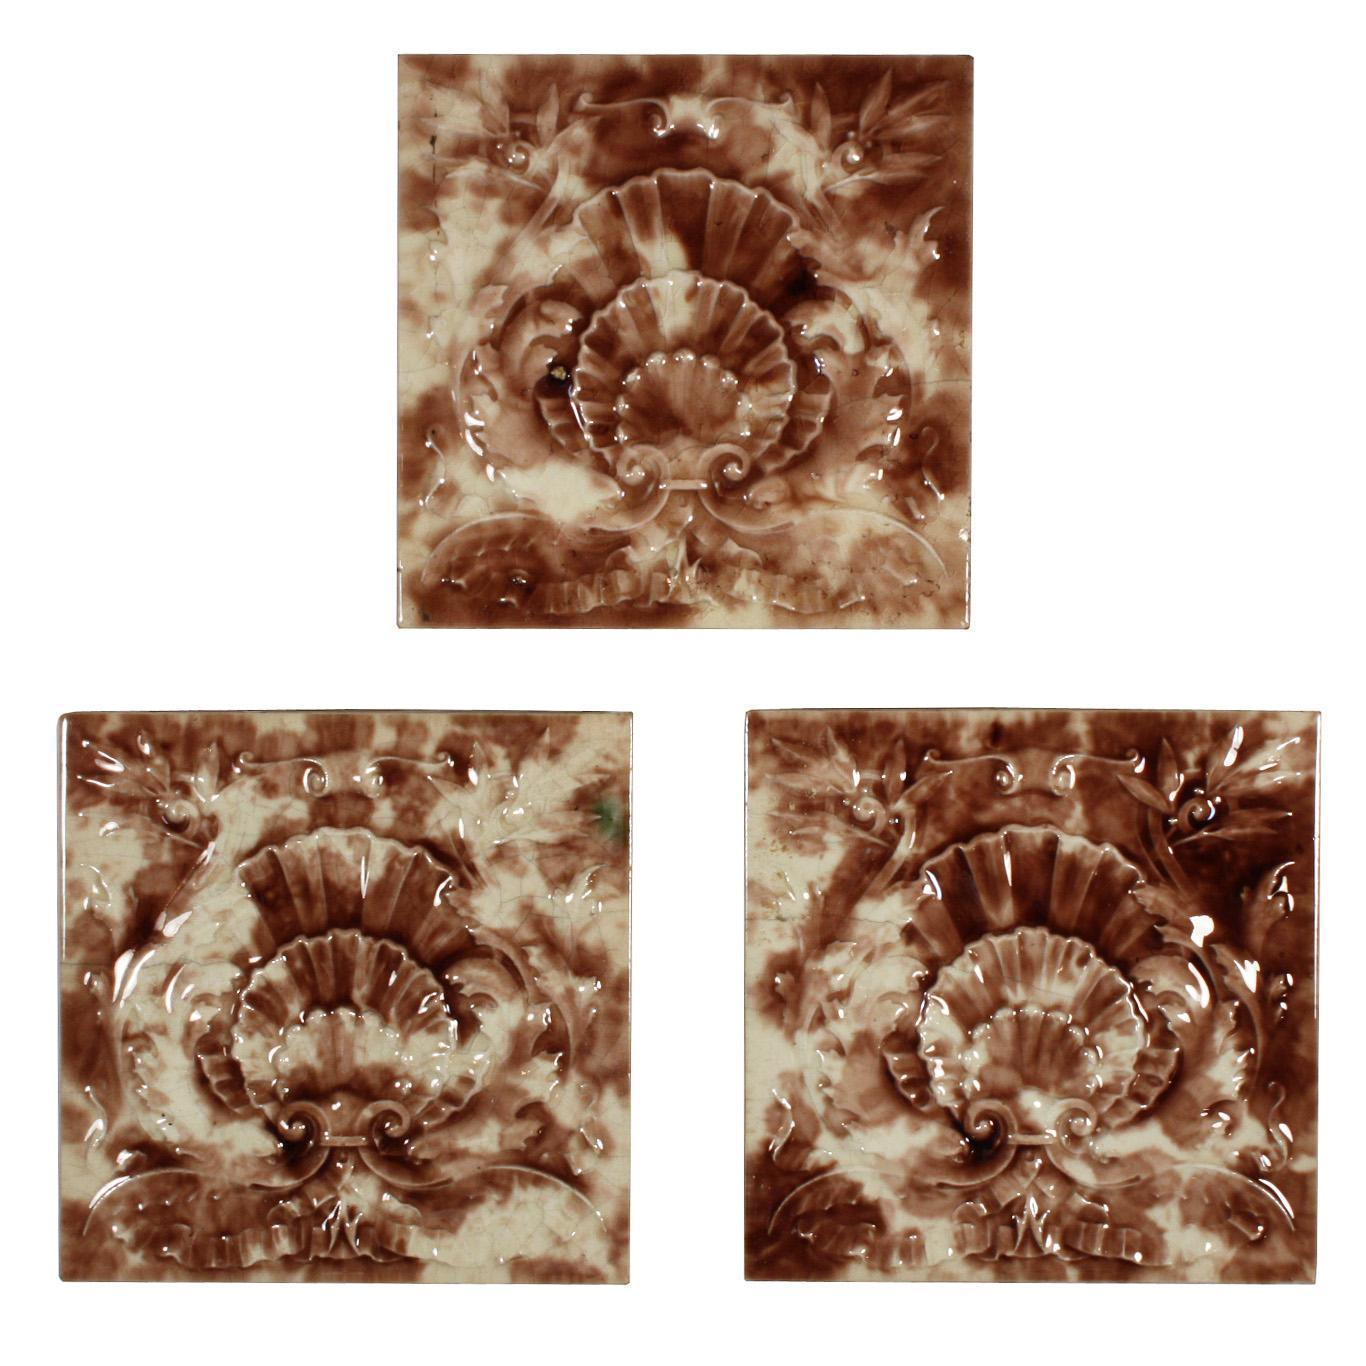 "Antique Tile with Seashell Design, 6"" x 6"", Cambridge Tile Co."